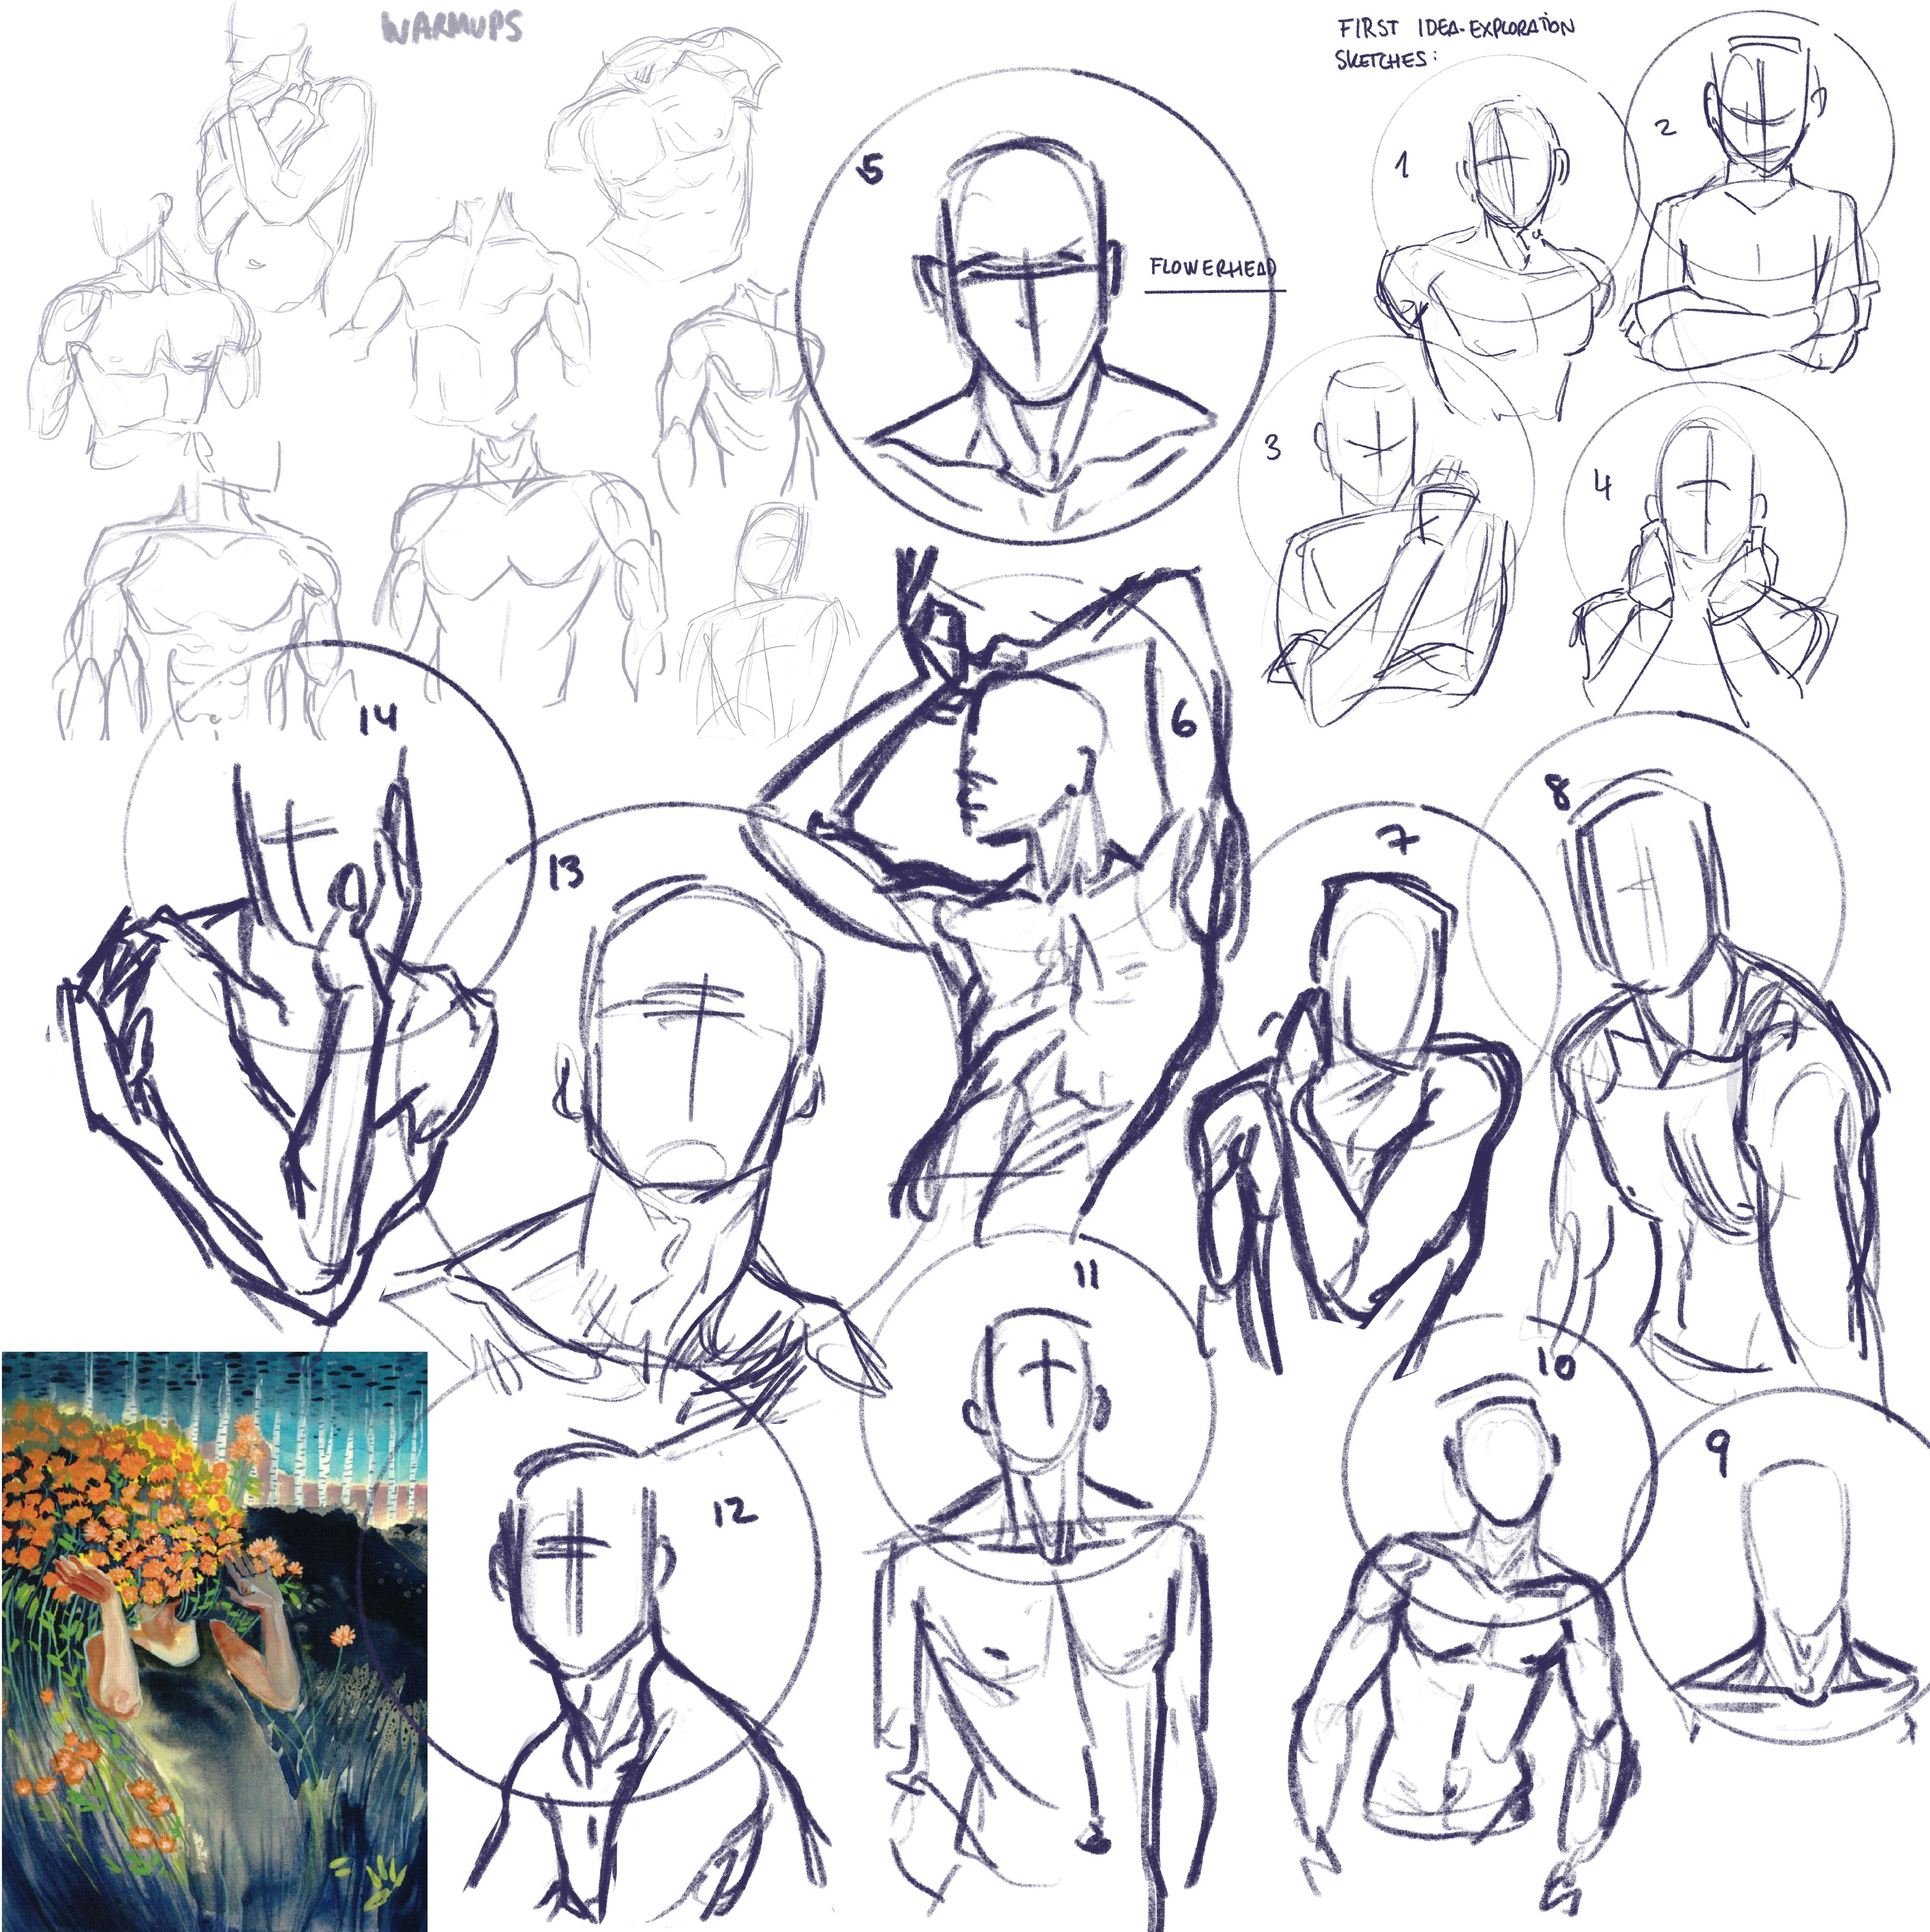 Collection of figure sketches and ideas I showed to the client so we could agree on the mood and direction of the piece. On the bottom left I have the original art of Flowerhead by Amanda Dawn Potter (@ burn_your_fire on Instagram)